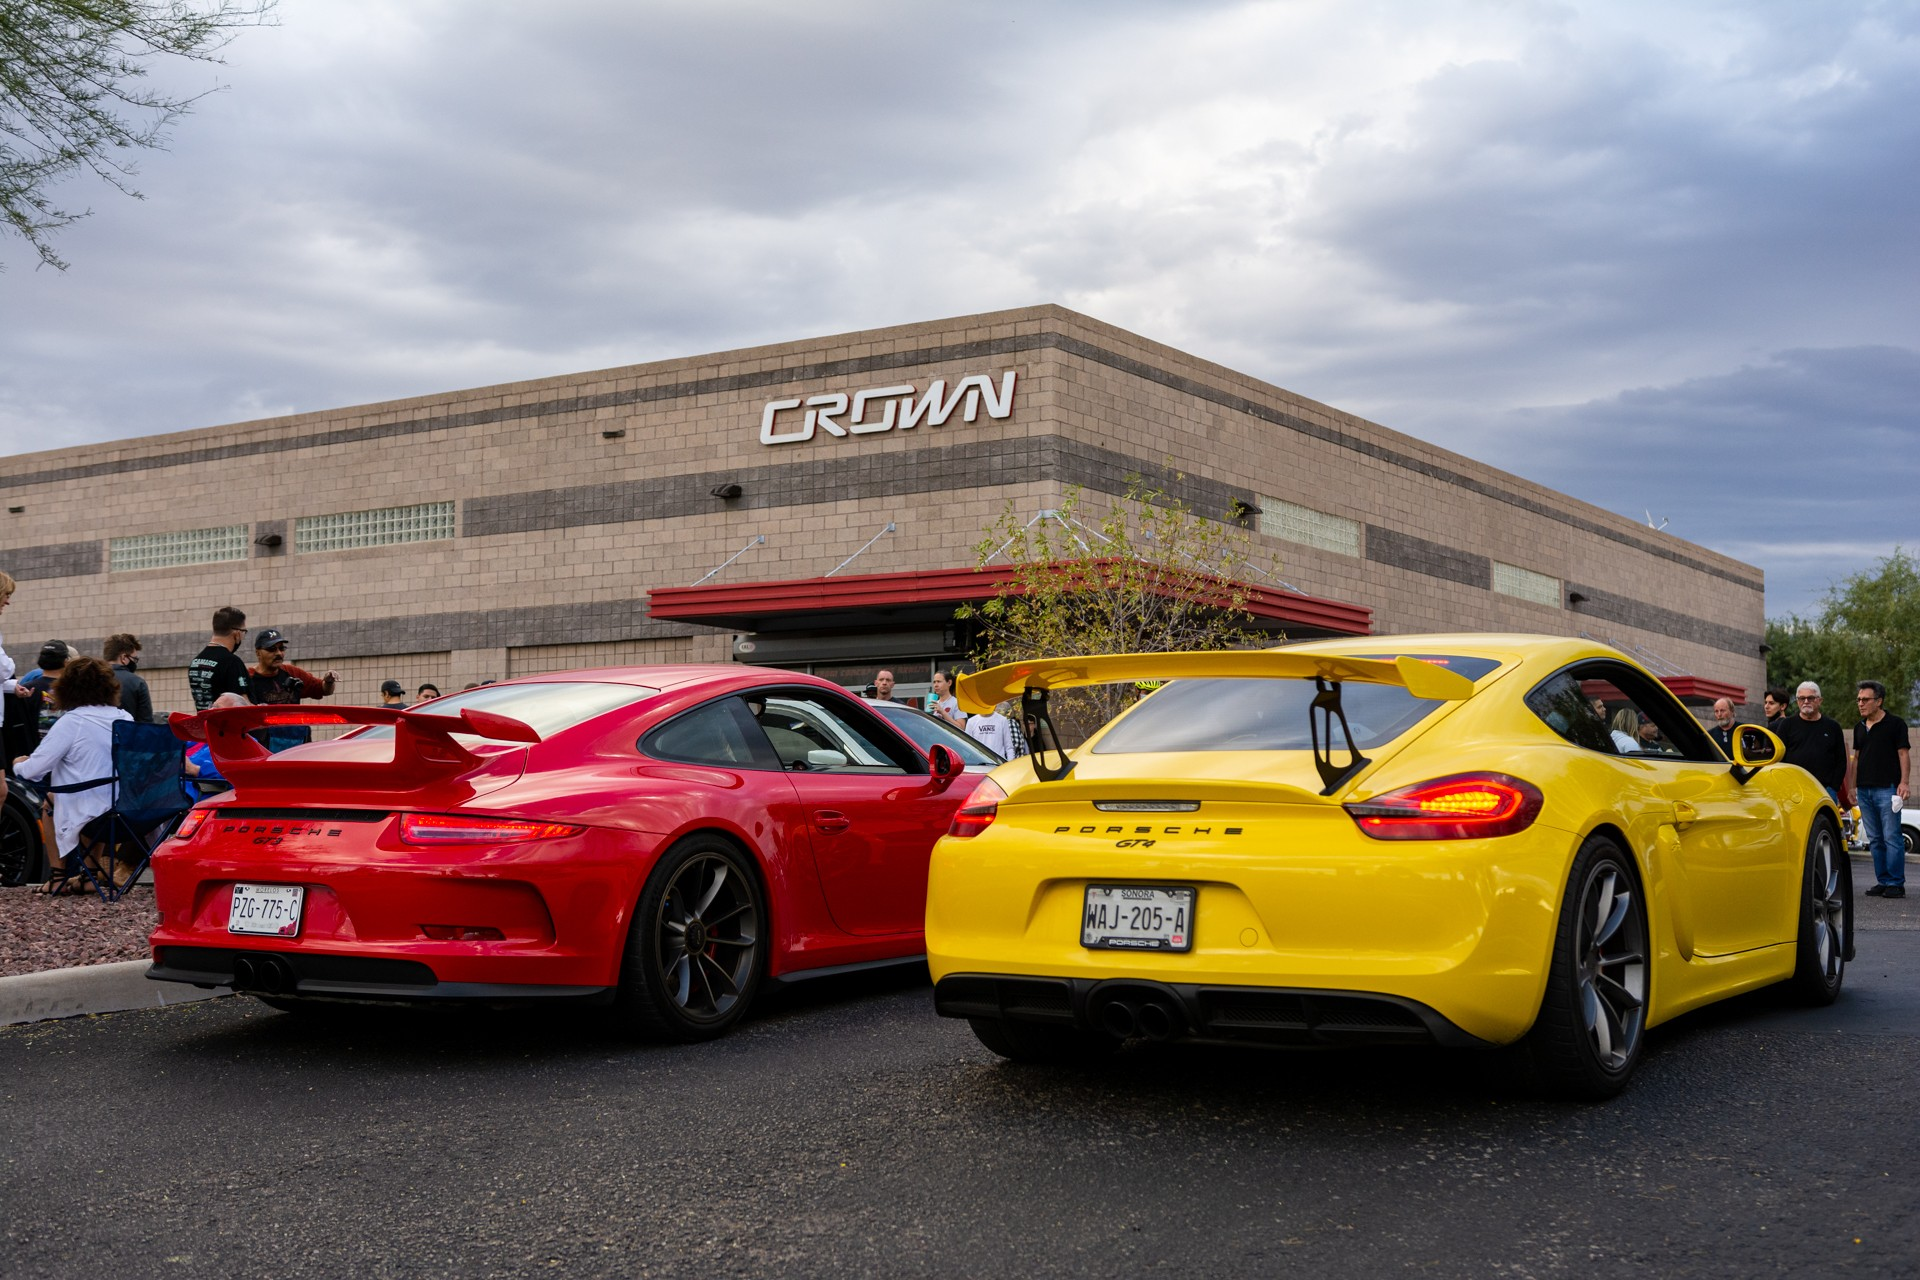 Crown Cars and Coffee November